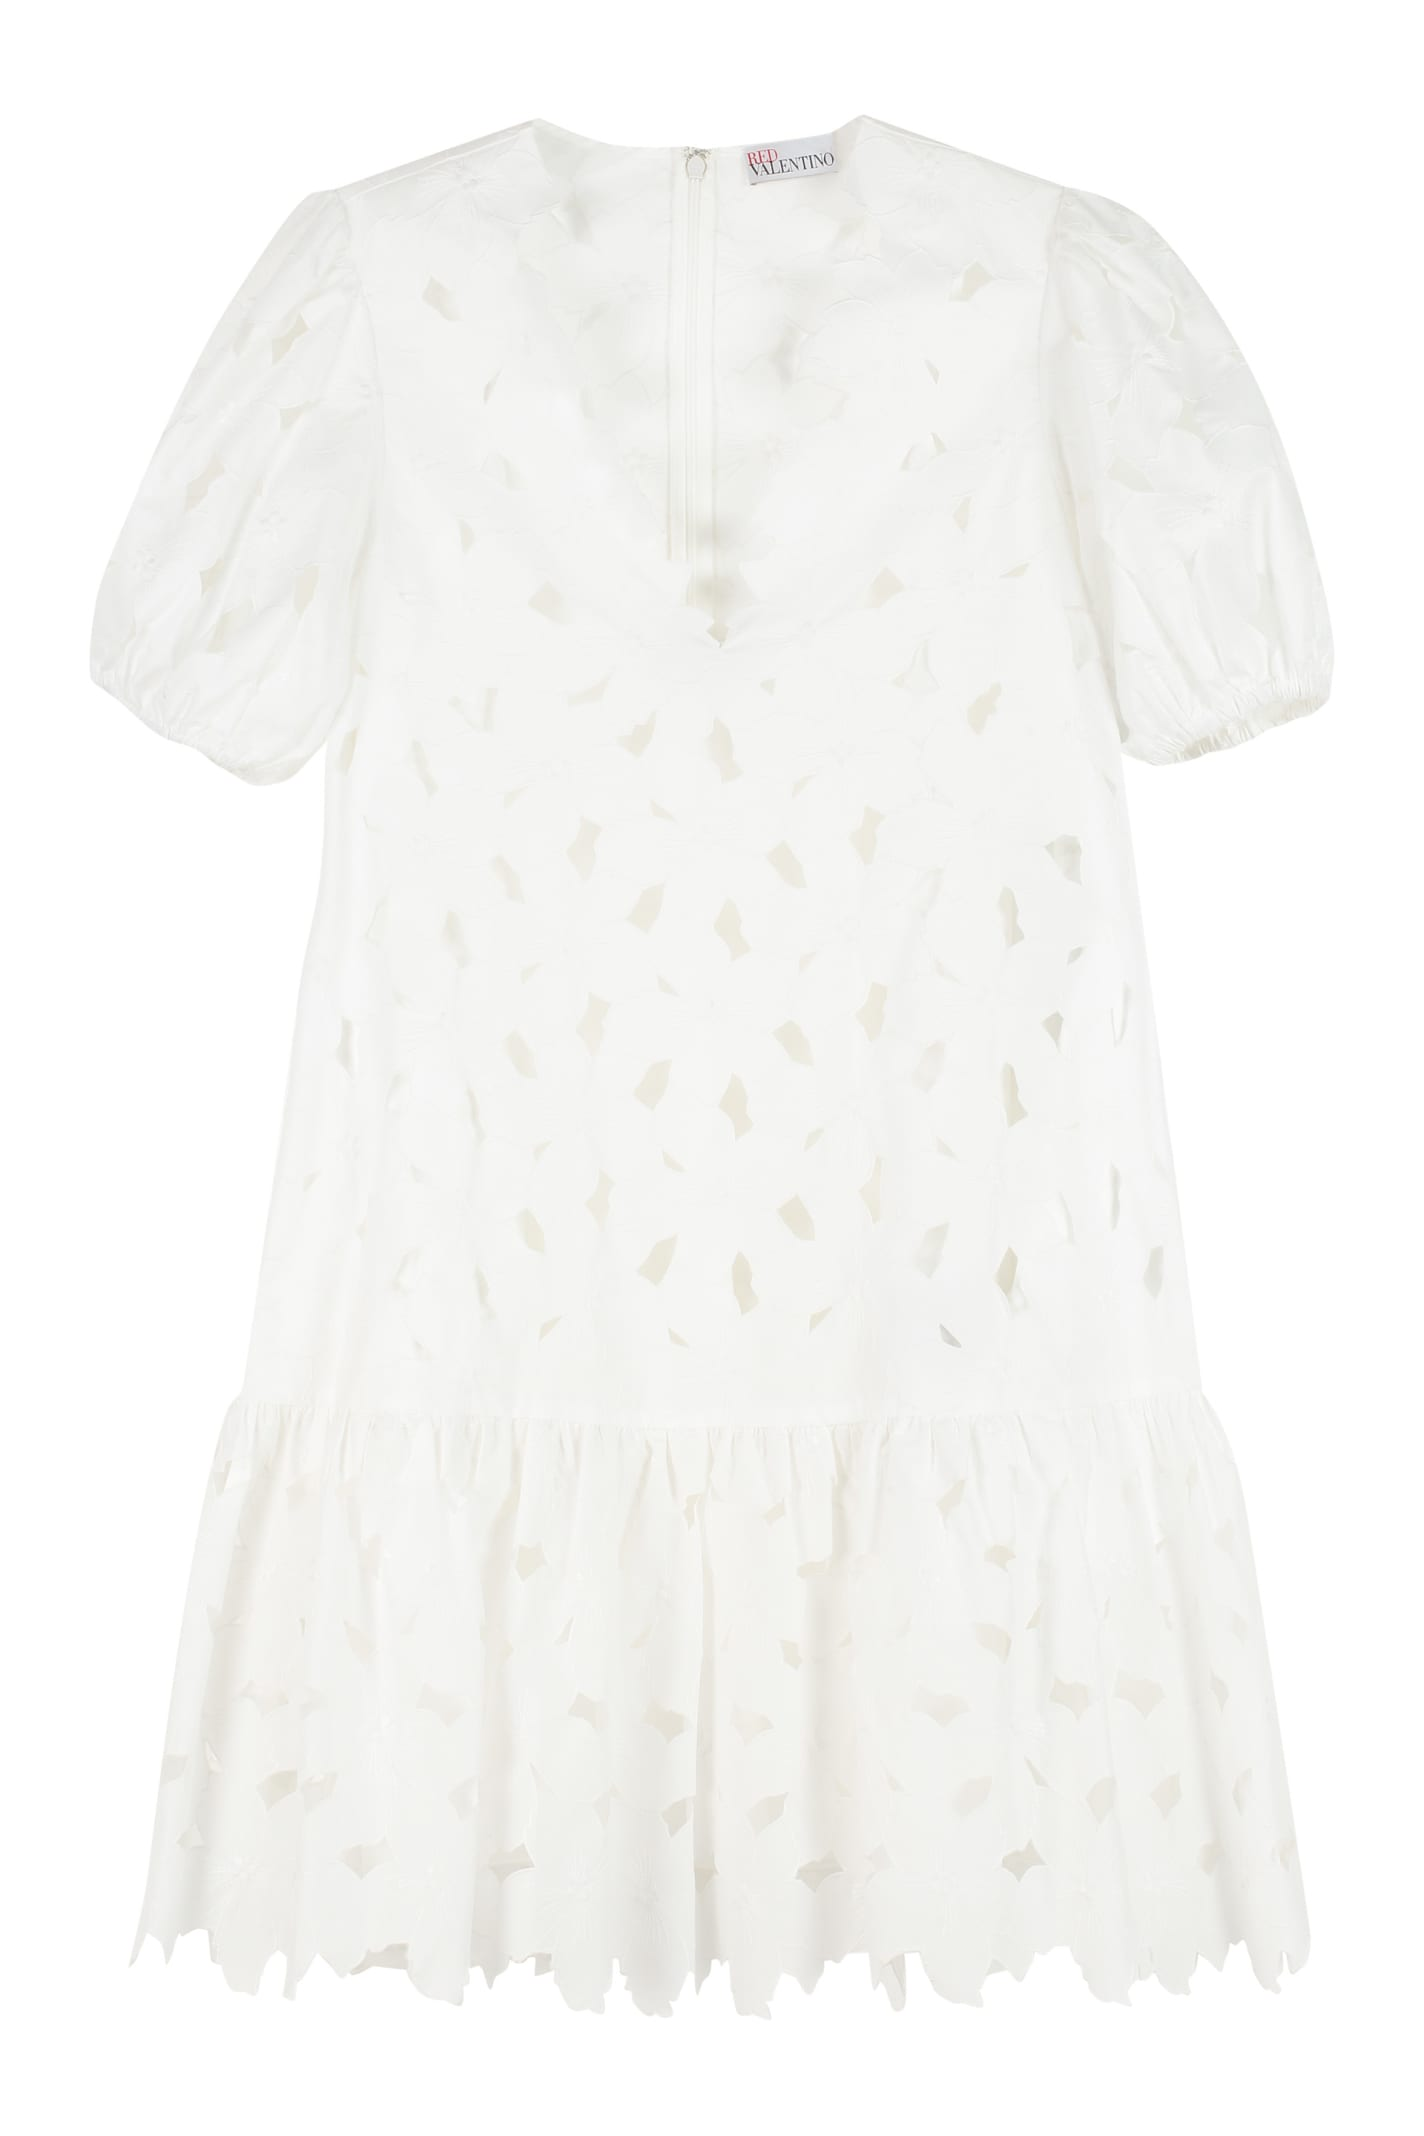 Buy RED Valentino Poplin Mini Dress online, shop RED Valentino with free shipping